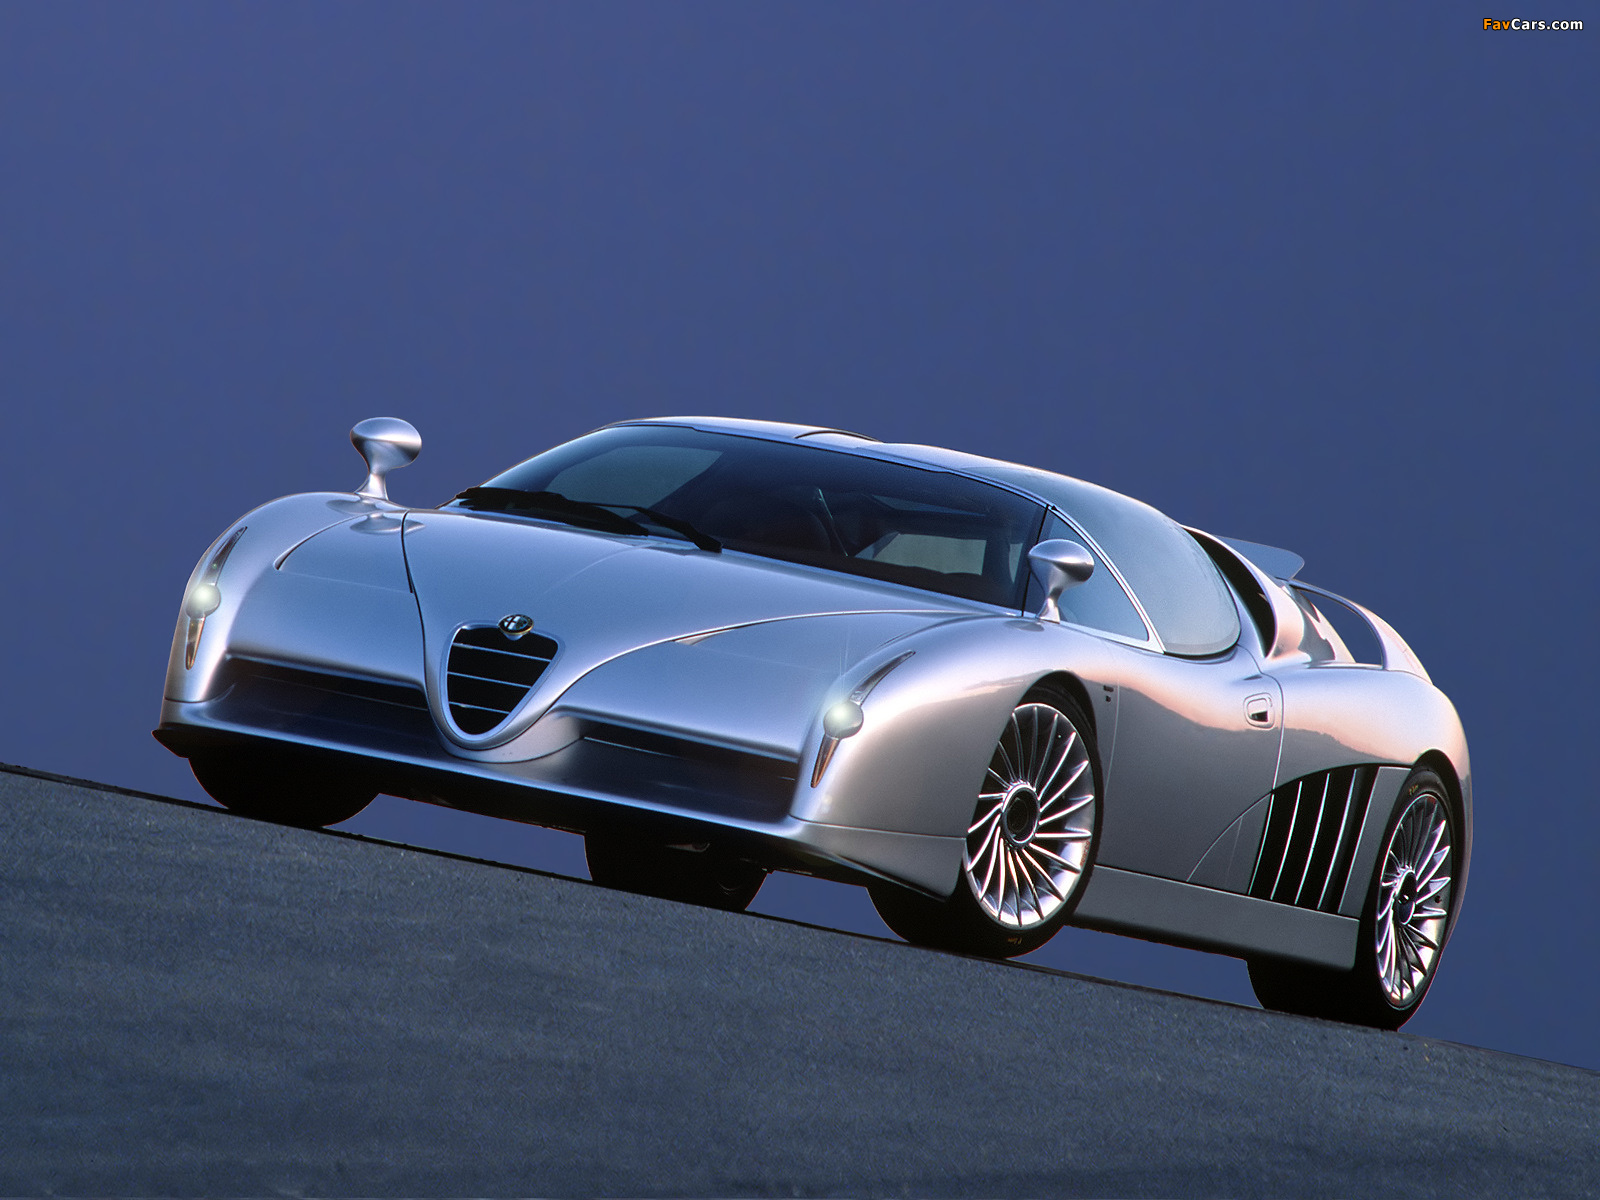 Wallpapers of Alfa Romeo Scighera (1997) (1600x1200)